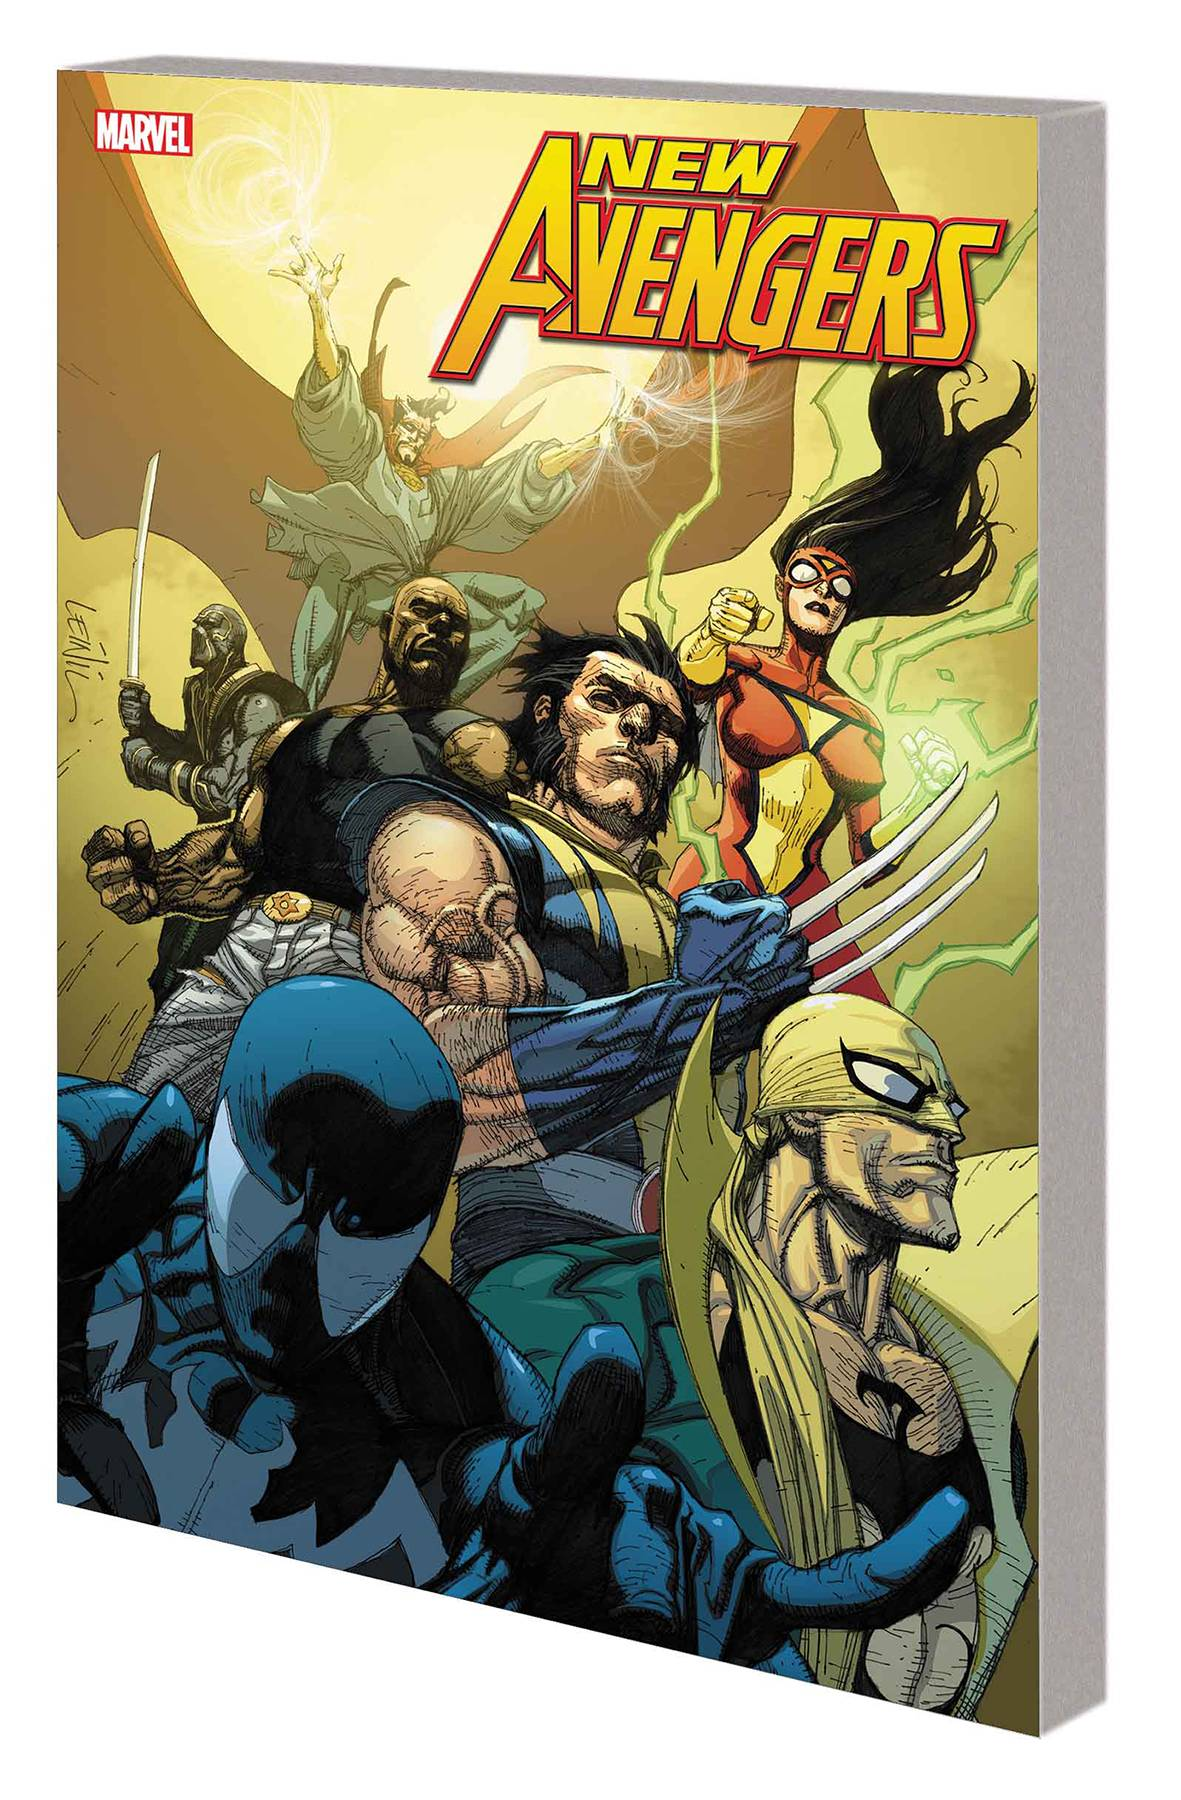 NEW AVENGERS BY BRIAN MICHAEL BENDIS: THE COMPLETE COLLECTION VOL 03